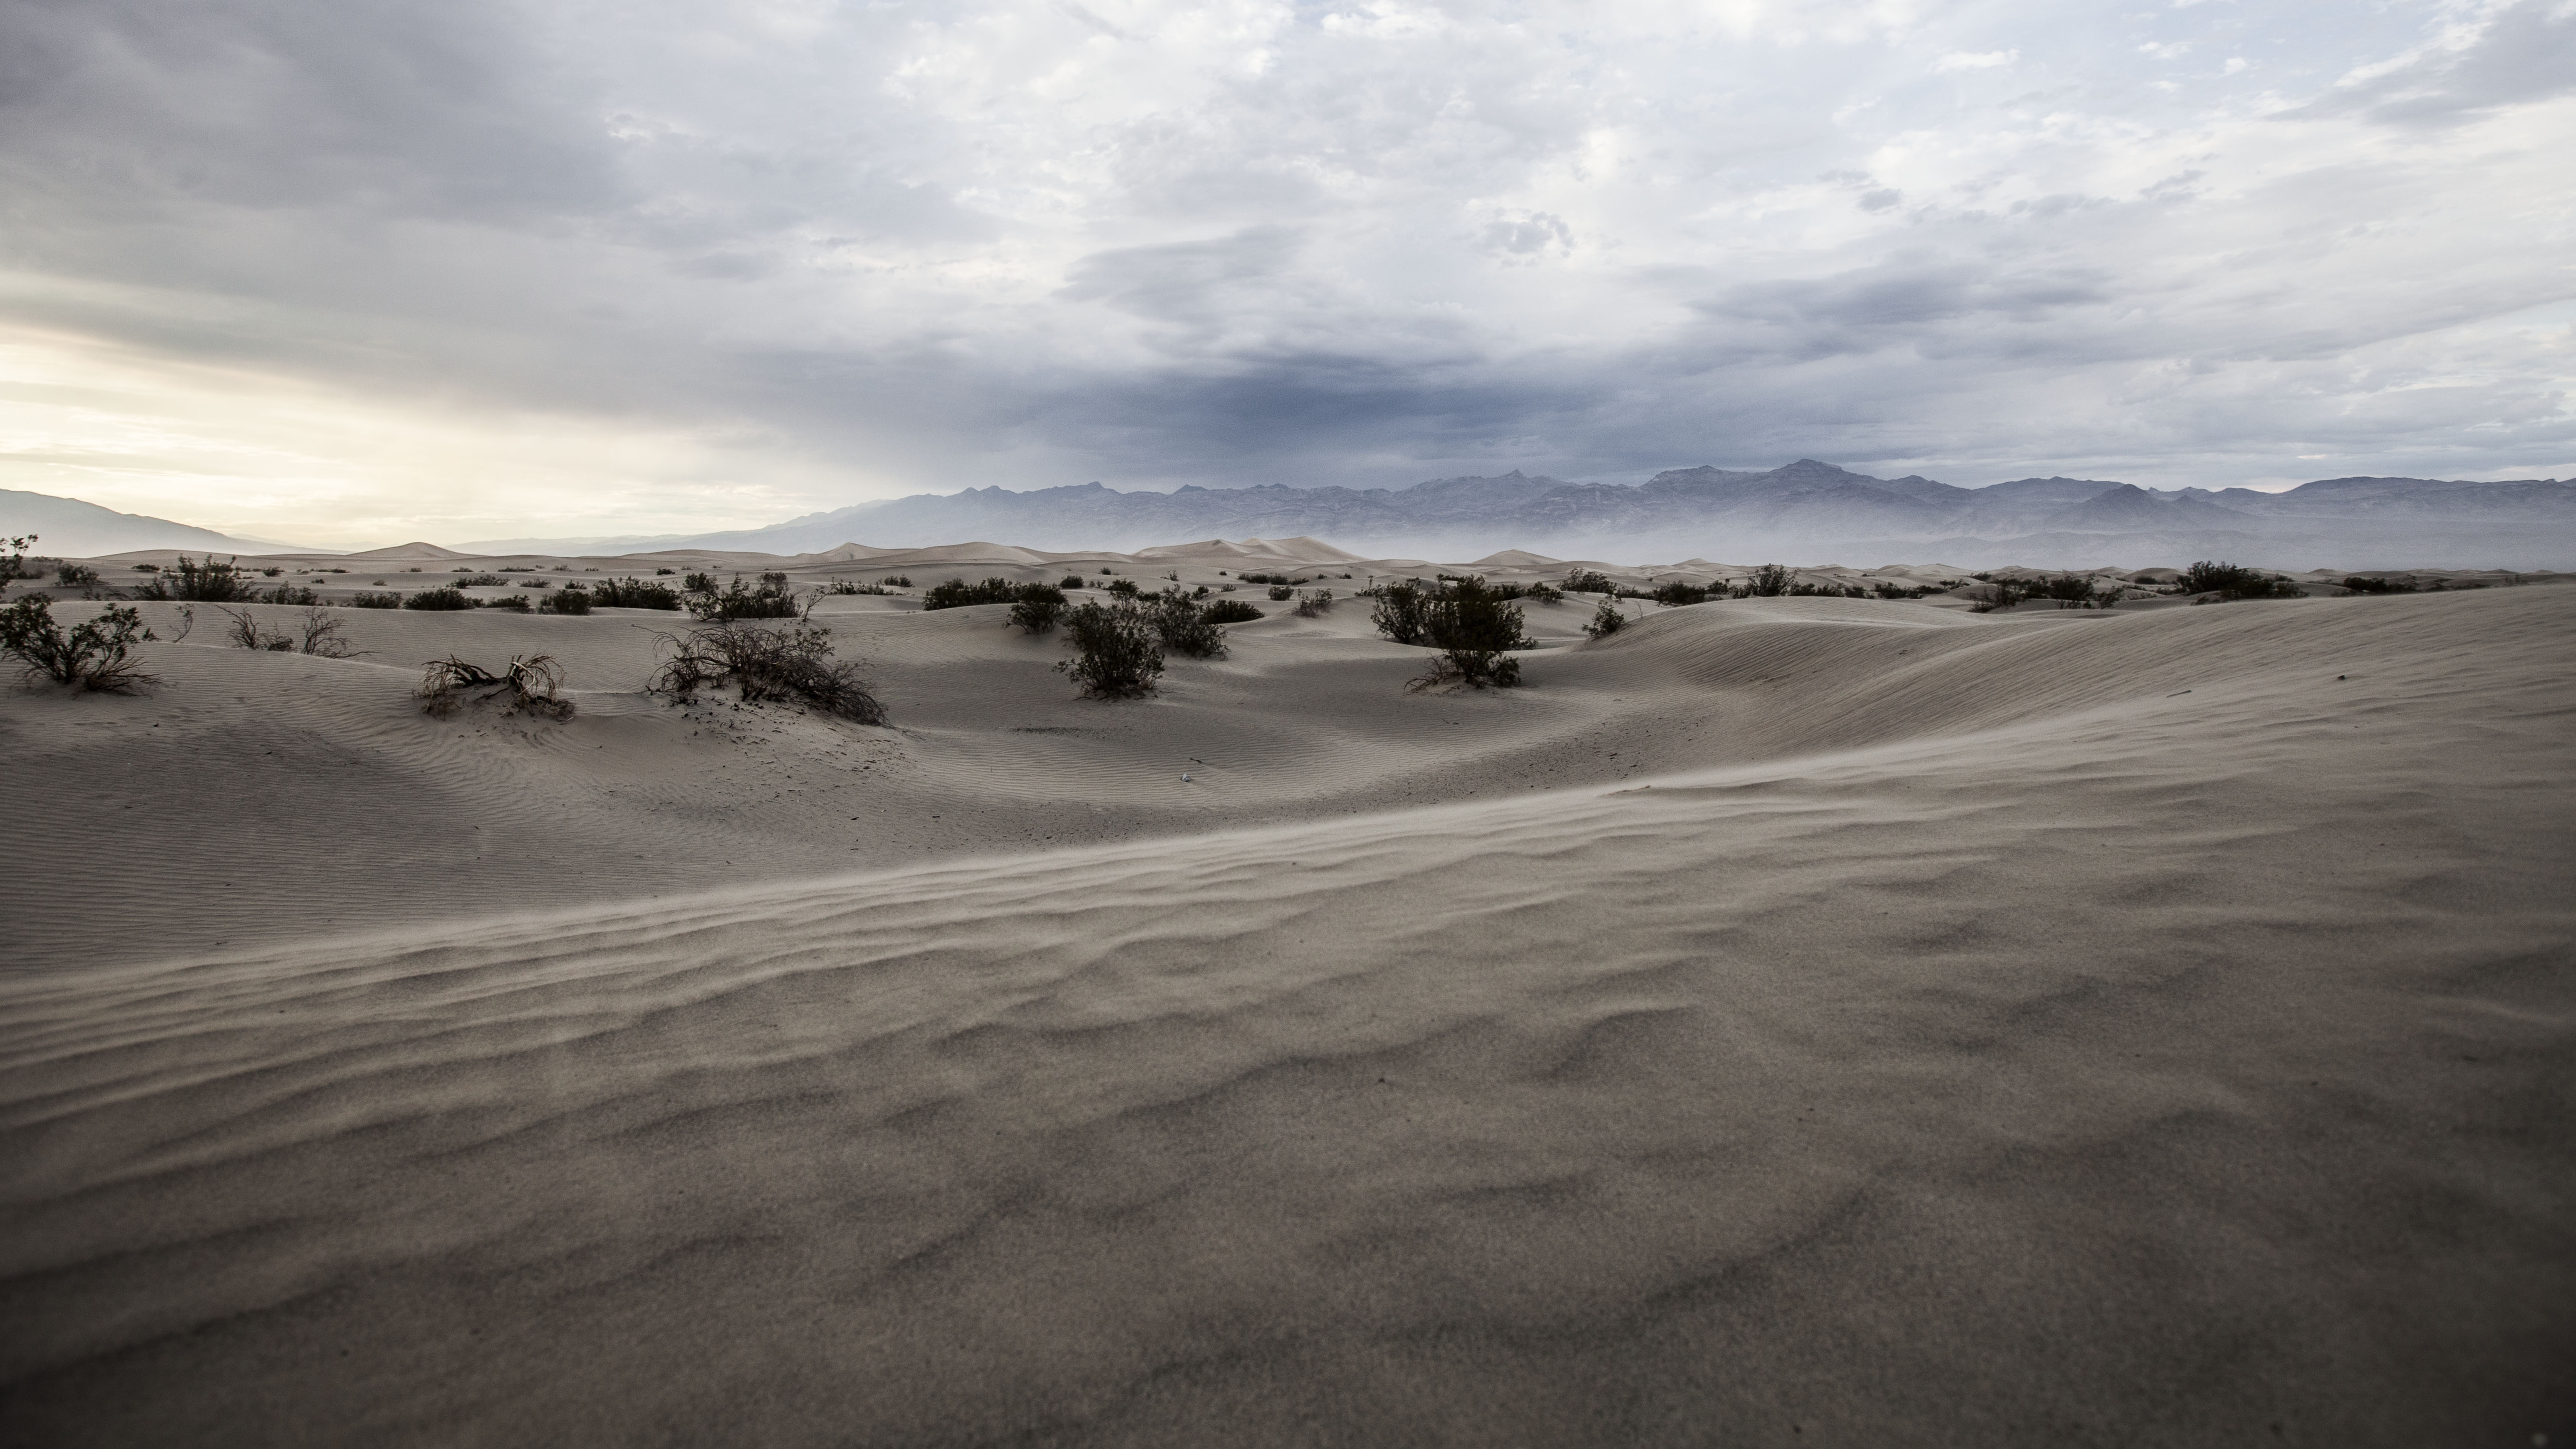 Death Valley, California, USA